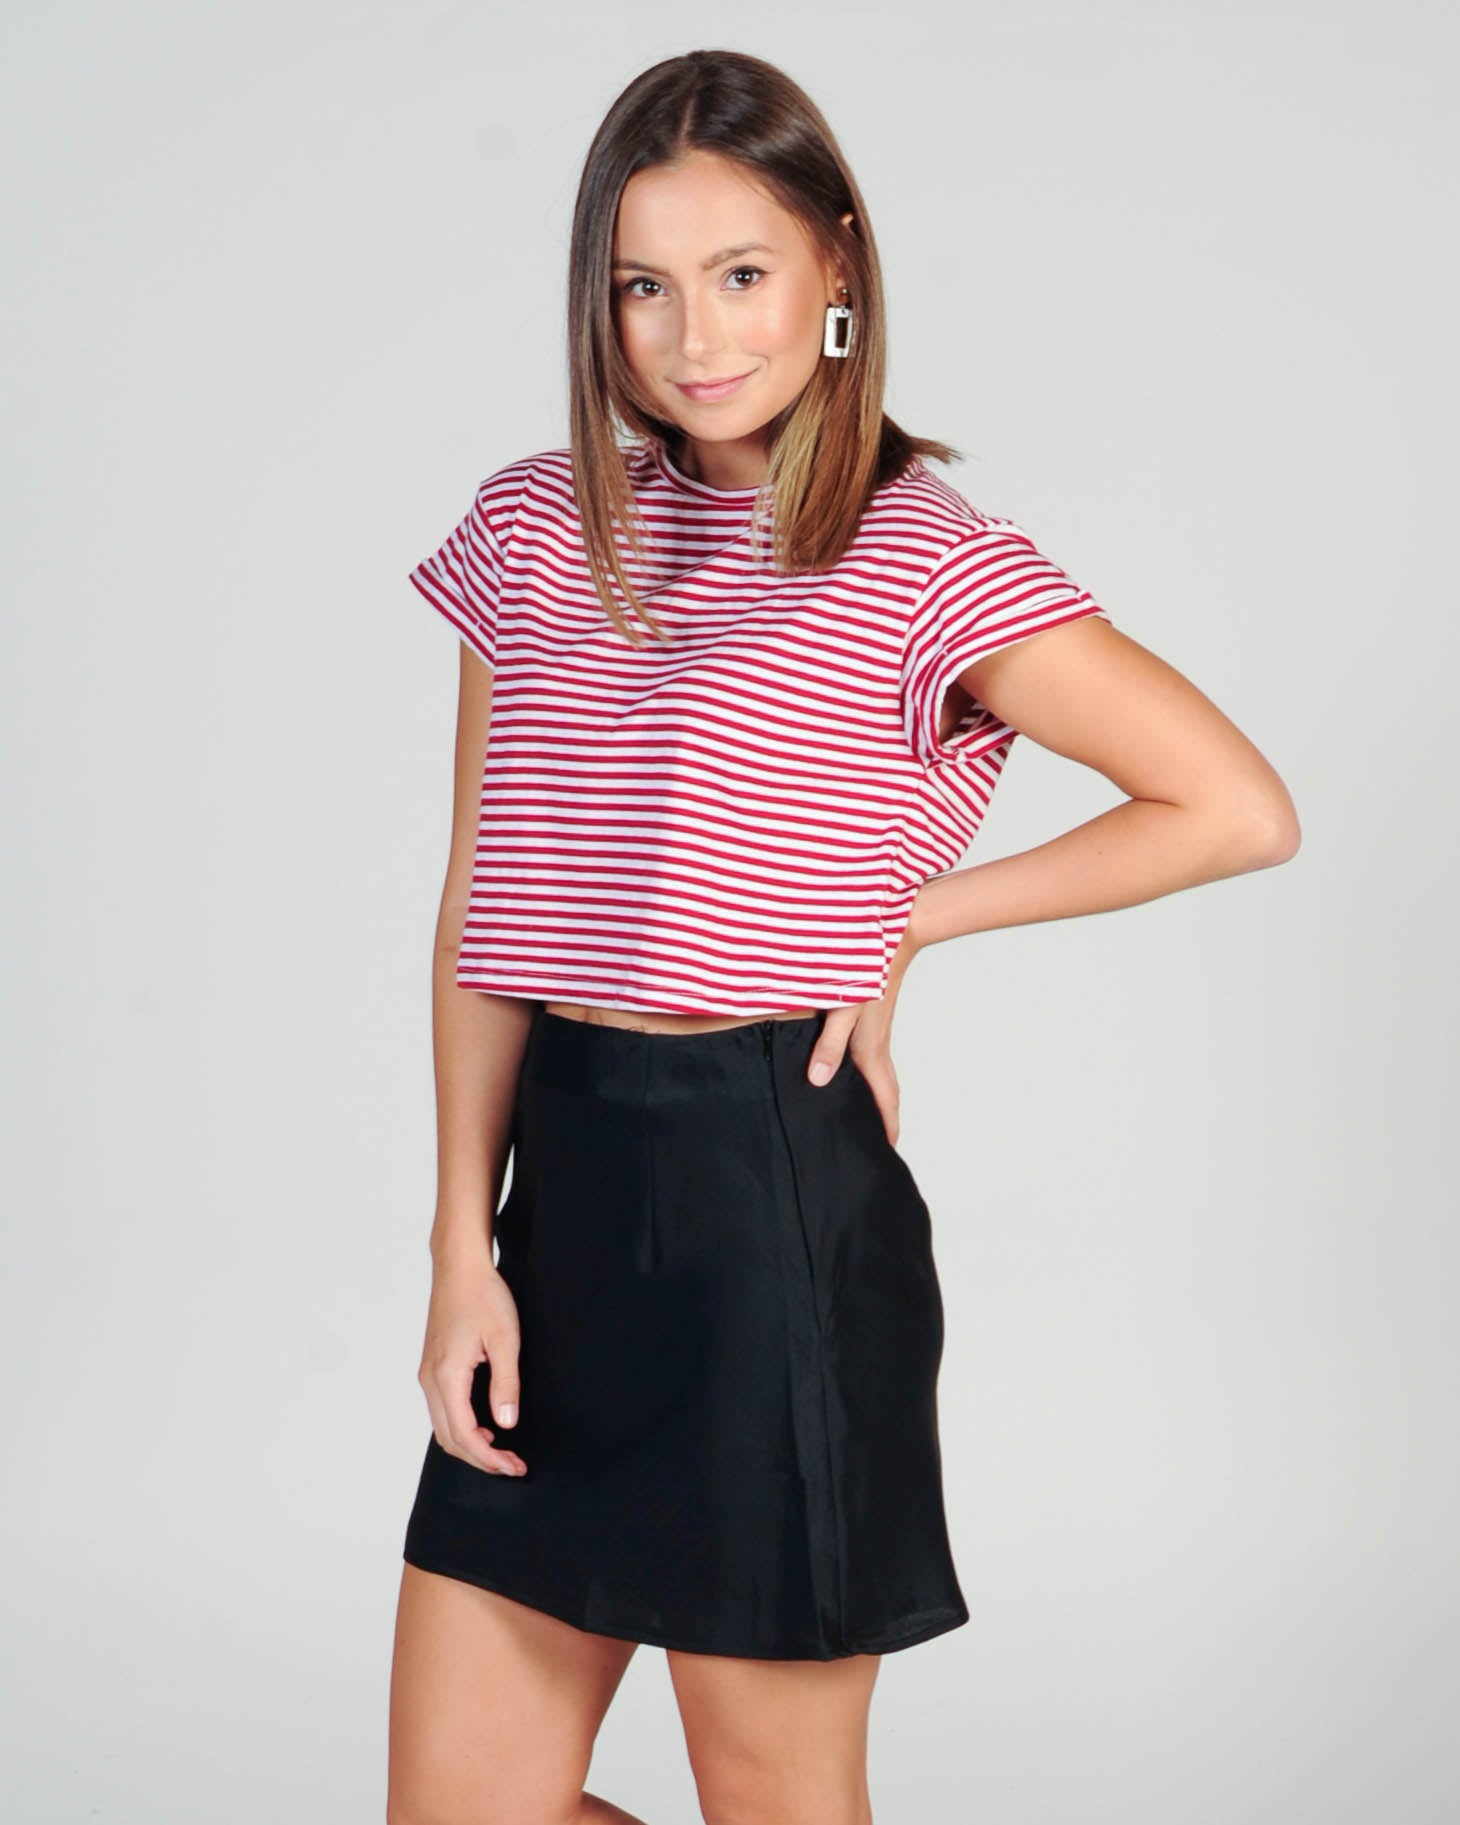 Silent Theory Bite The Bullet Crop Stripe Top - Red/White